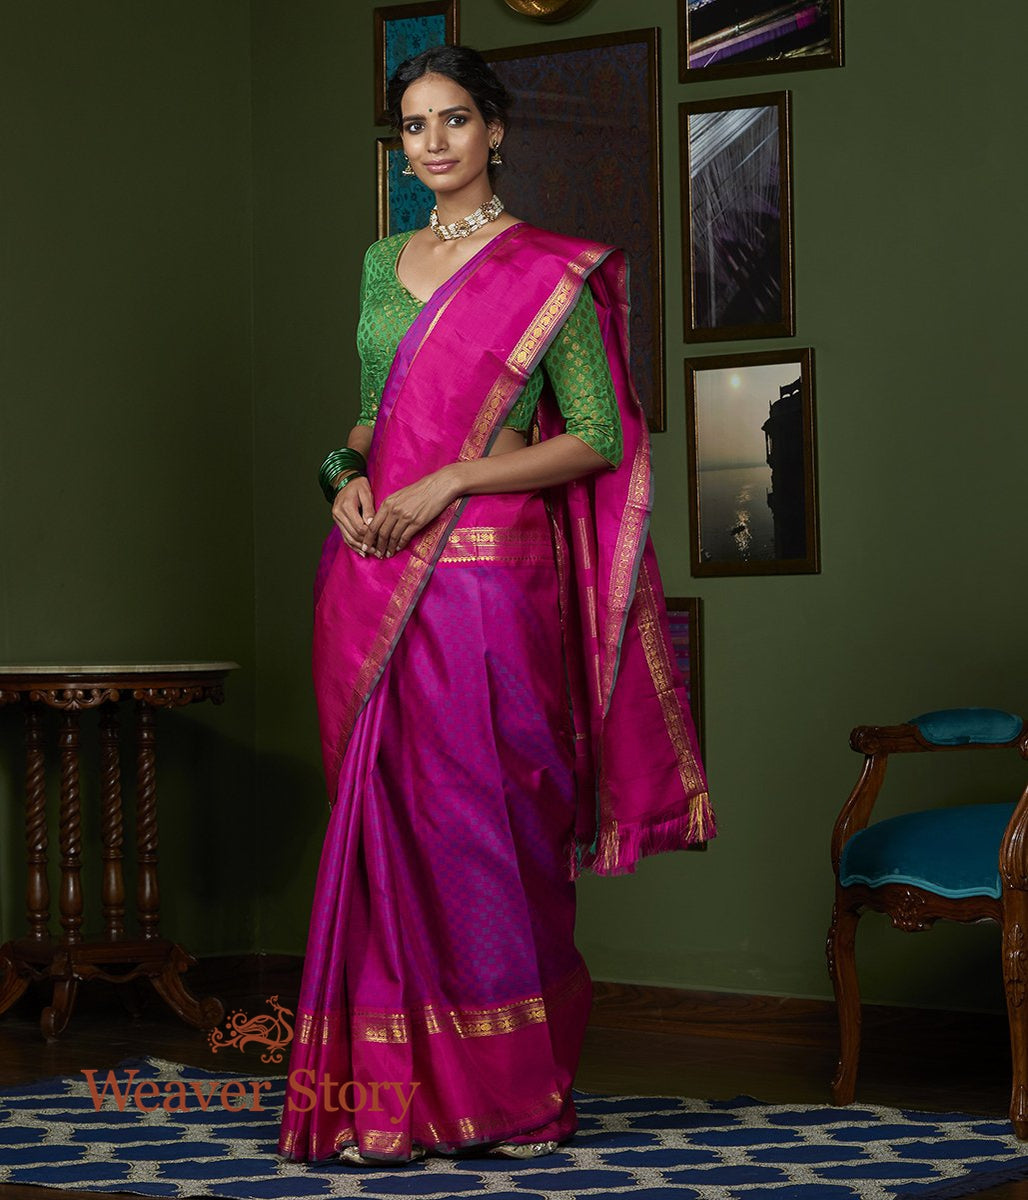 Handwoven Pink and Purple Self Checks Kanjivaram Silk Saree with Pink Broad Border